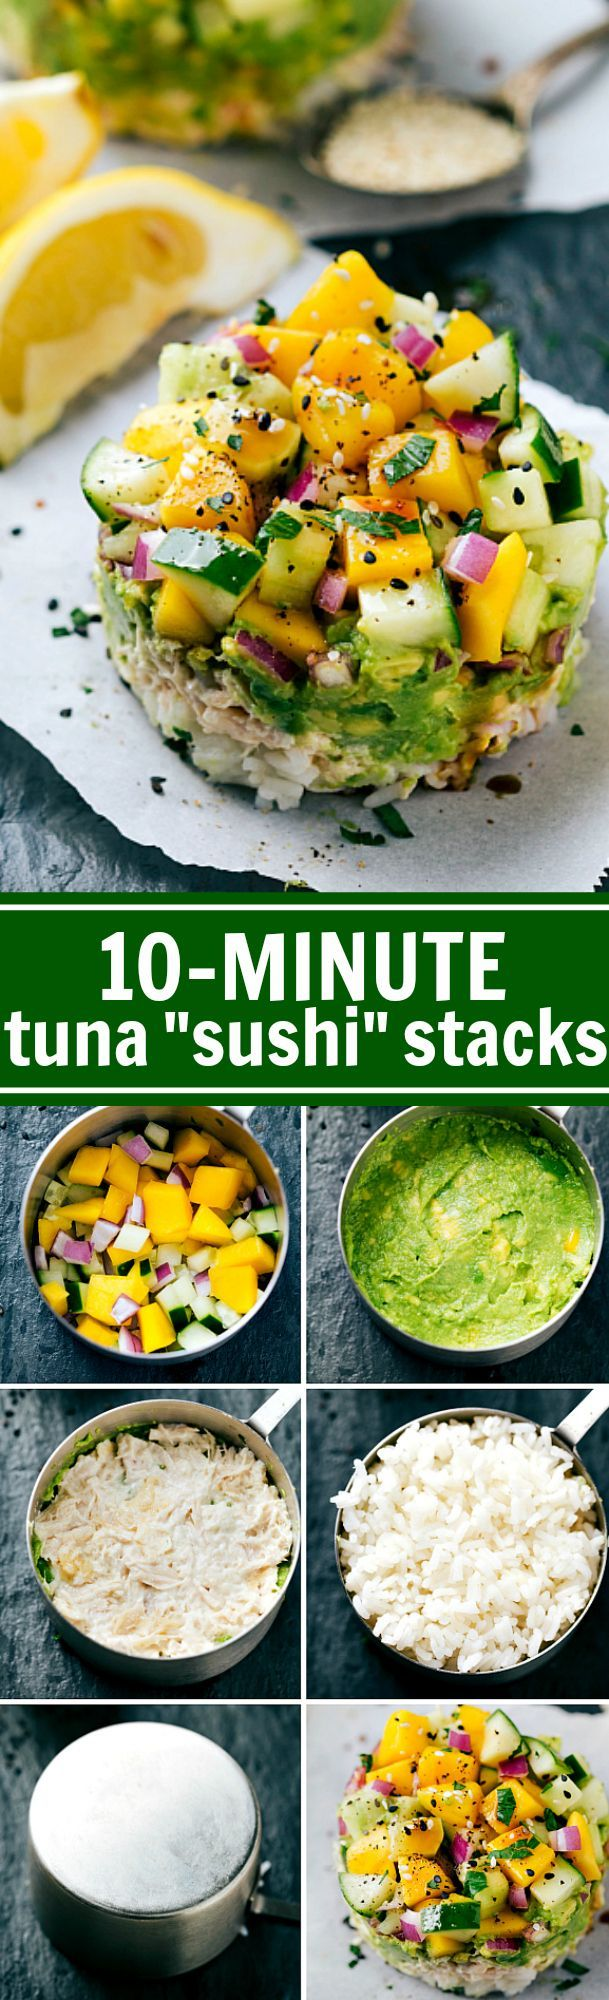 "Tuna ""Sushi"" Stacks"